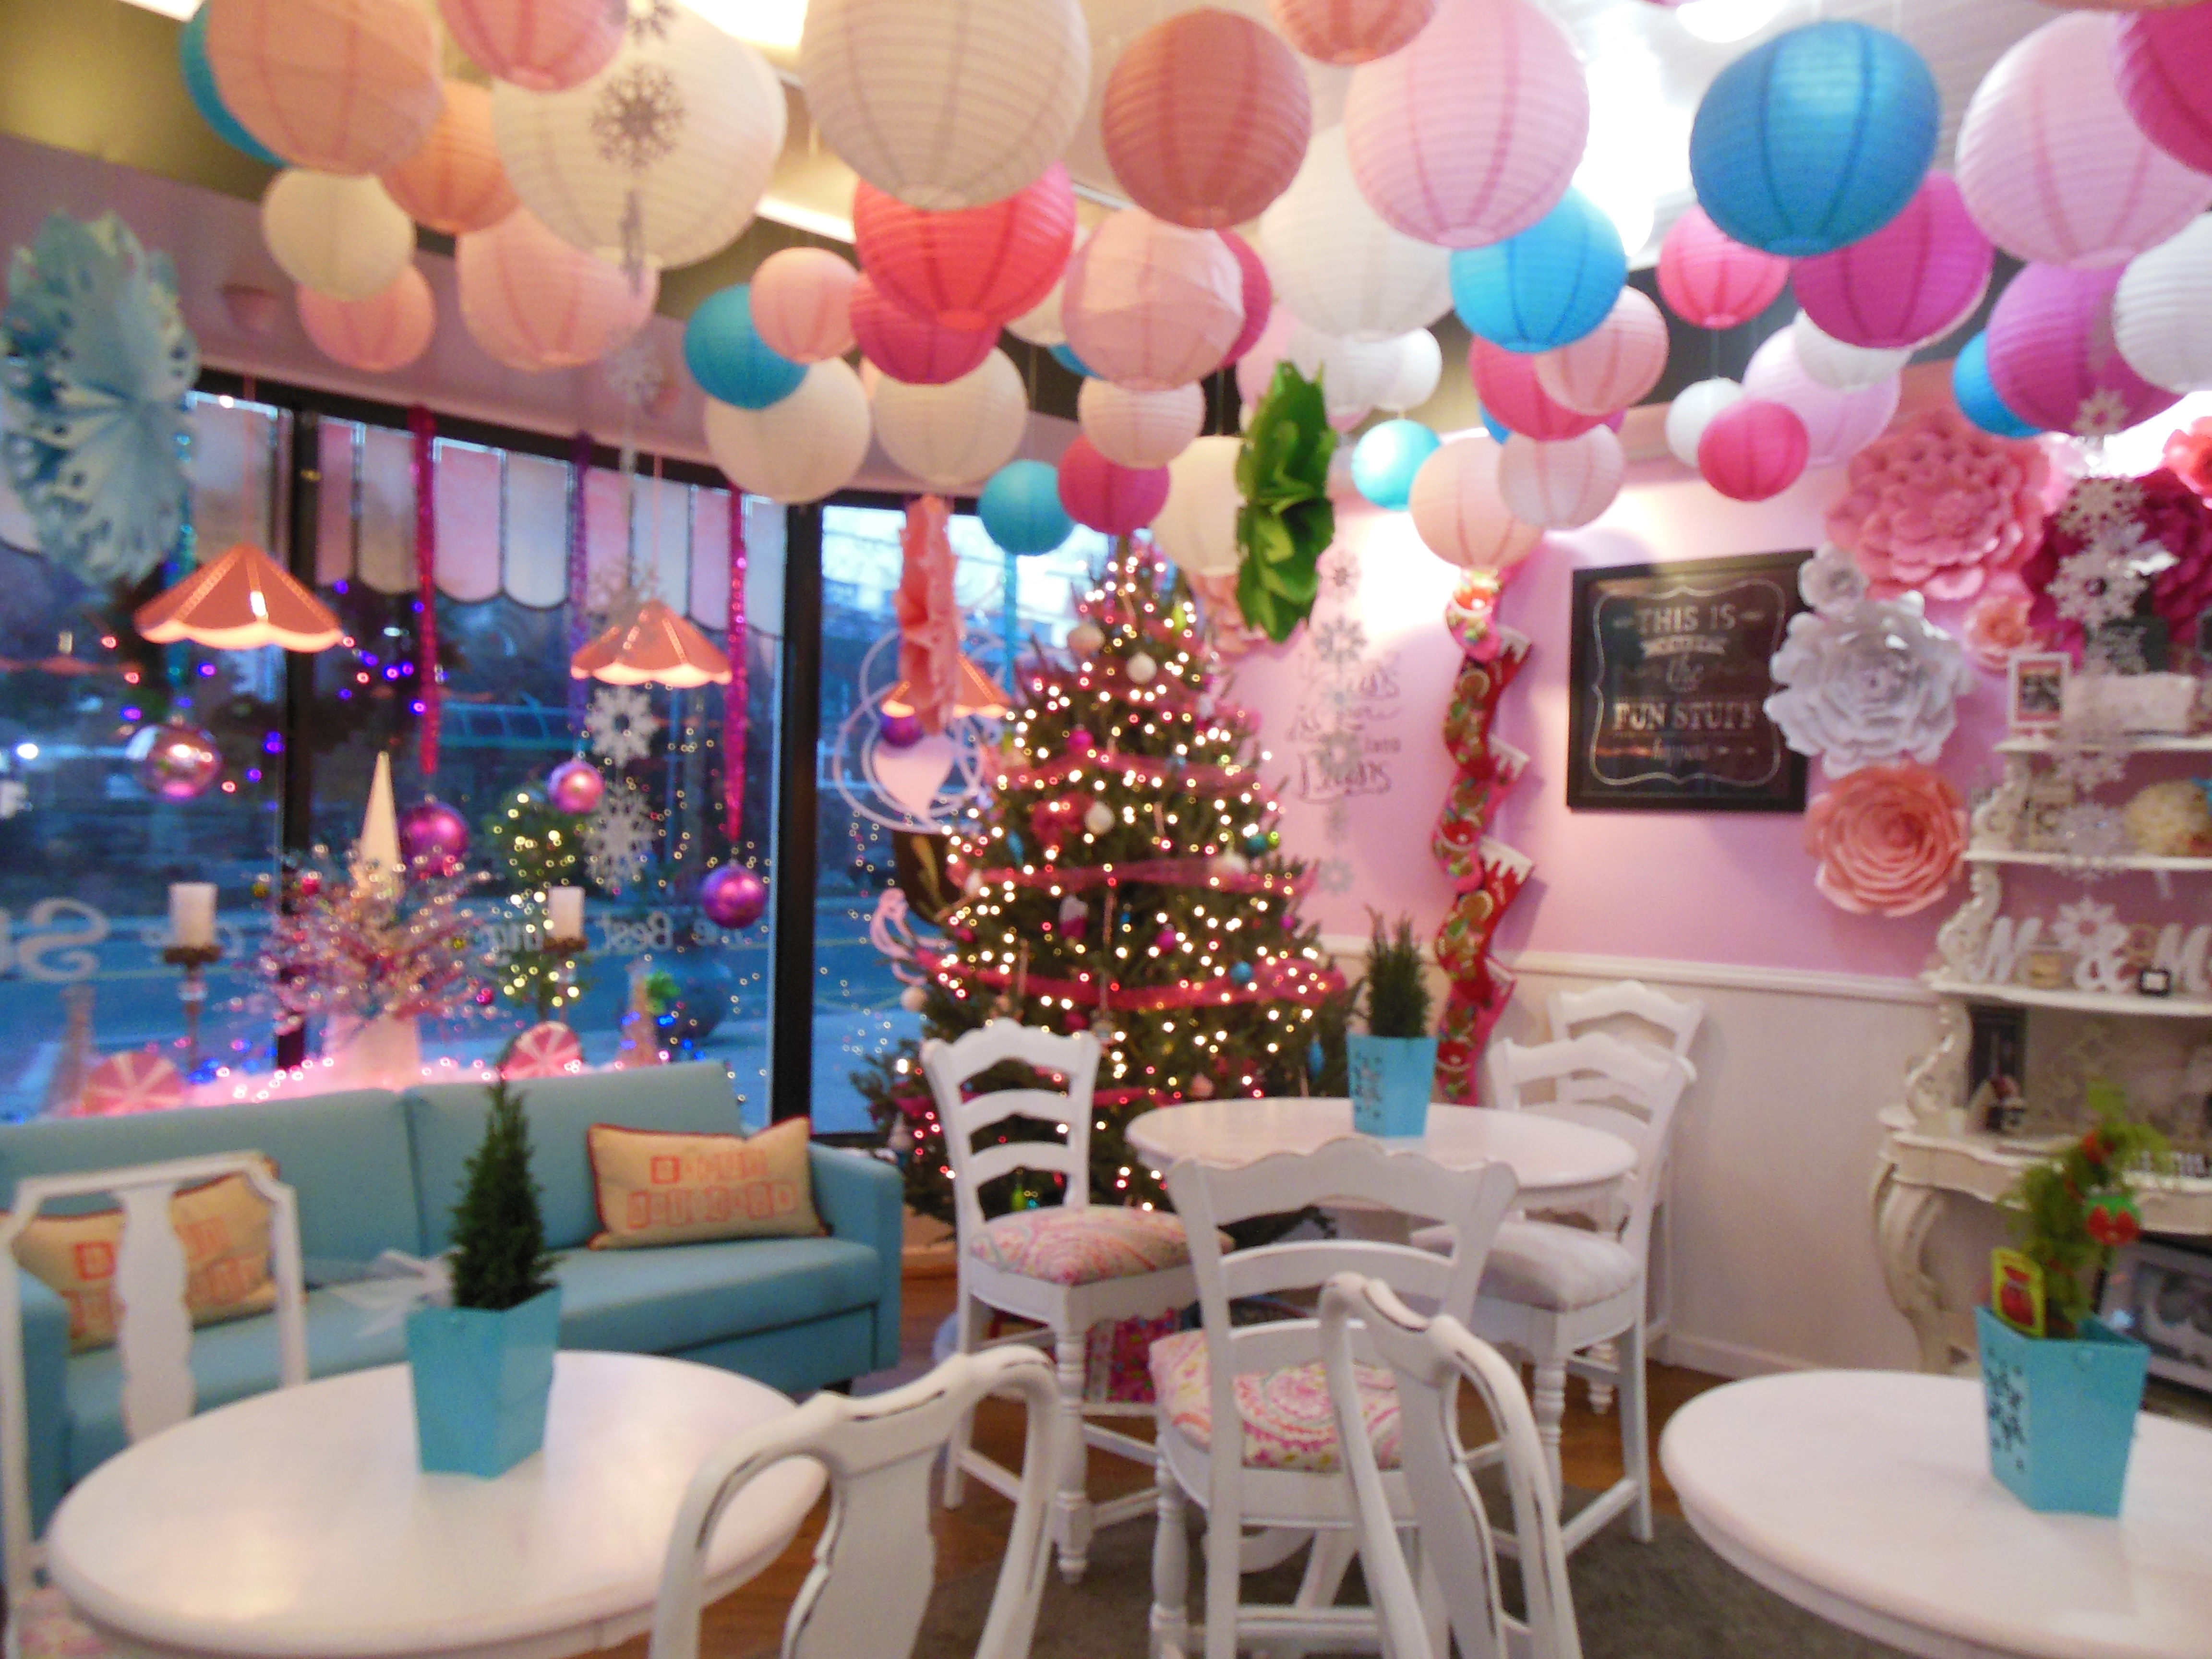 shannon-flynn-sweet-cupcasions-is-as-sweet-as-ever-pic-2